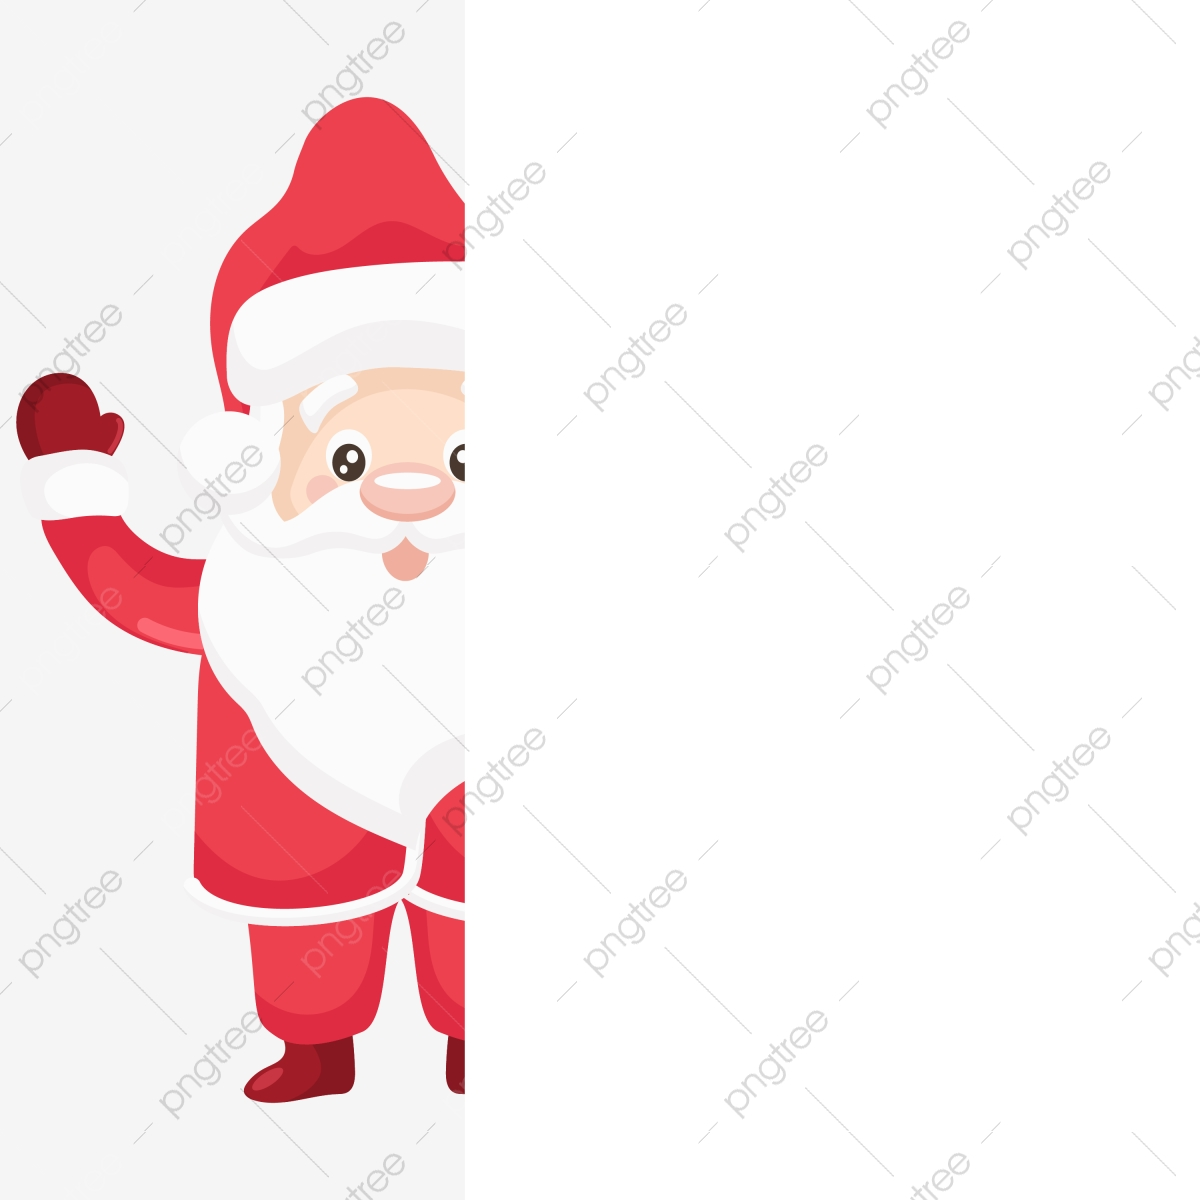 Raise Hands Png Images Vector And Psd Files Free Download On Pngtree Download icons in all formats or edit them for your designs. https pngtree com freepng little santa claus raising hands at christmas holding blank sign 5586534 html